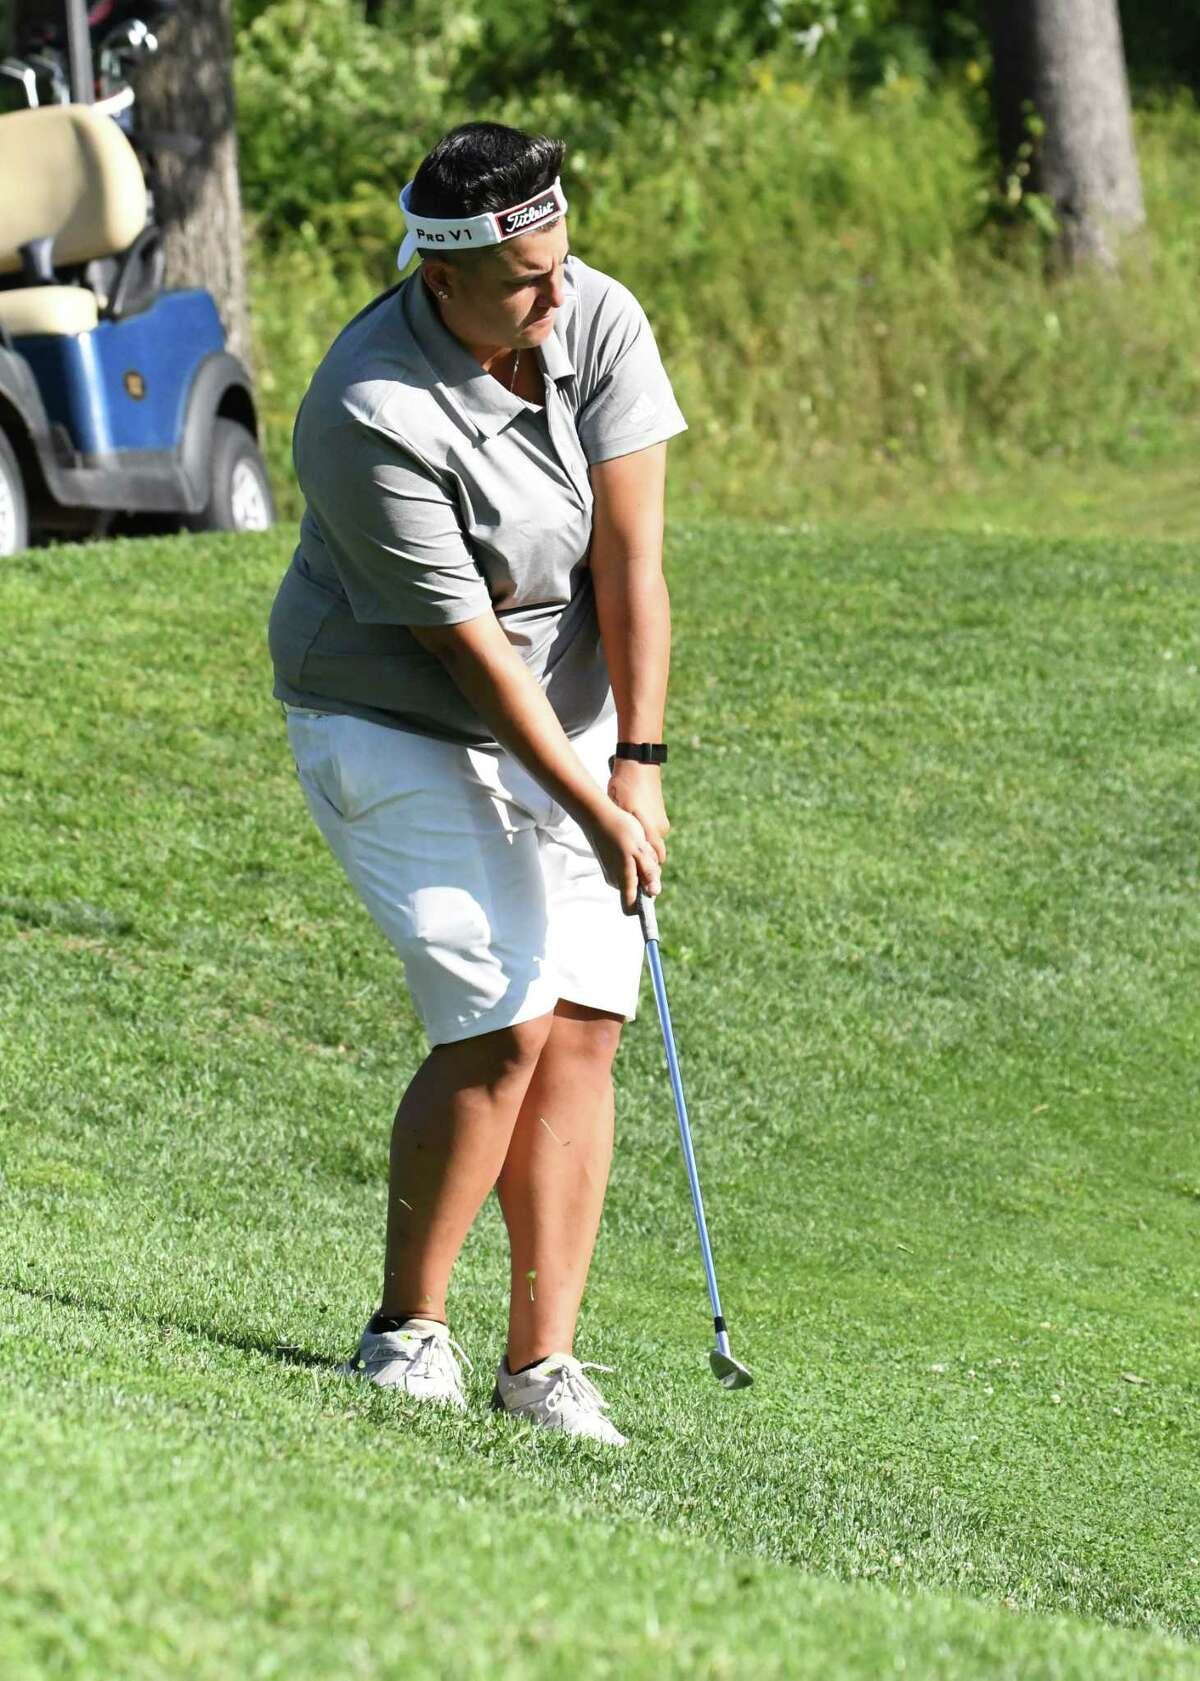 Daniella Iacobelli chips on the 18th hole of the CDPHP Pro-Am, a Symetra Tour exhibition tournament at Capital Hills, on Friday, Aug. 28, 2020. She finished with a 3-over 74. (Joyce Bassett / Special to the Times Union)